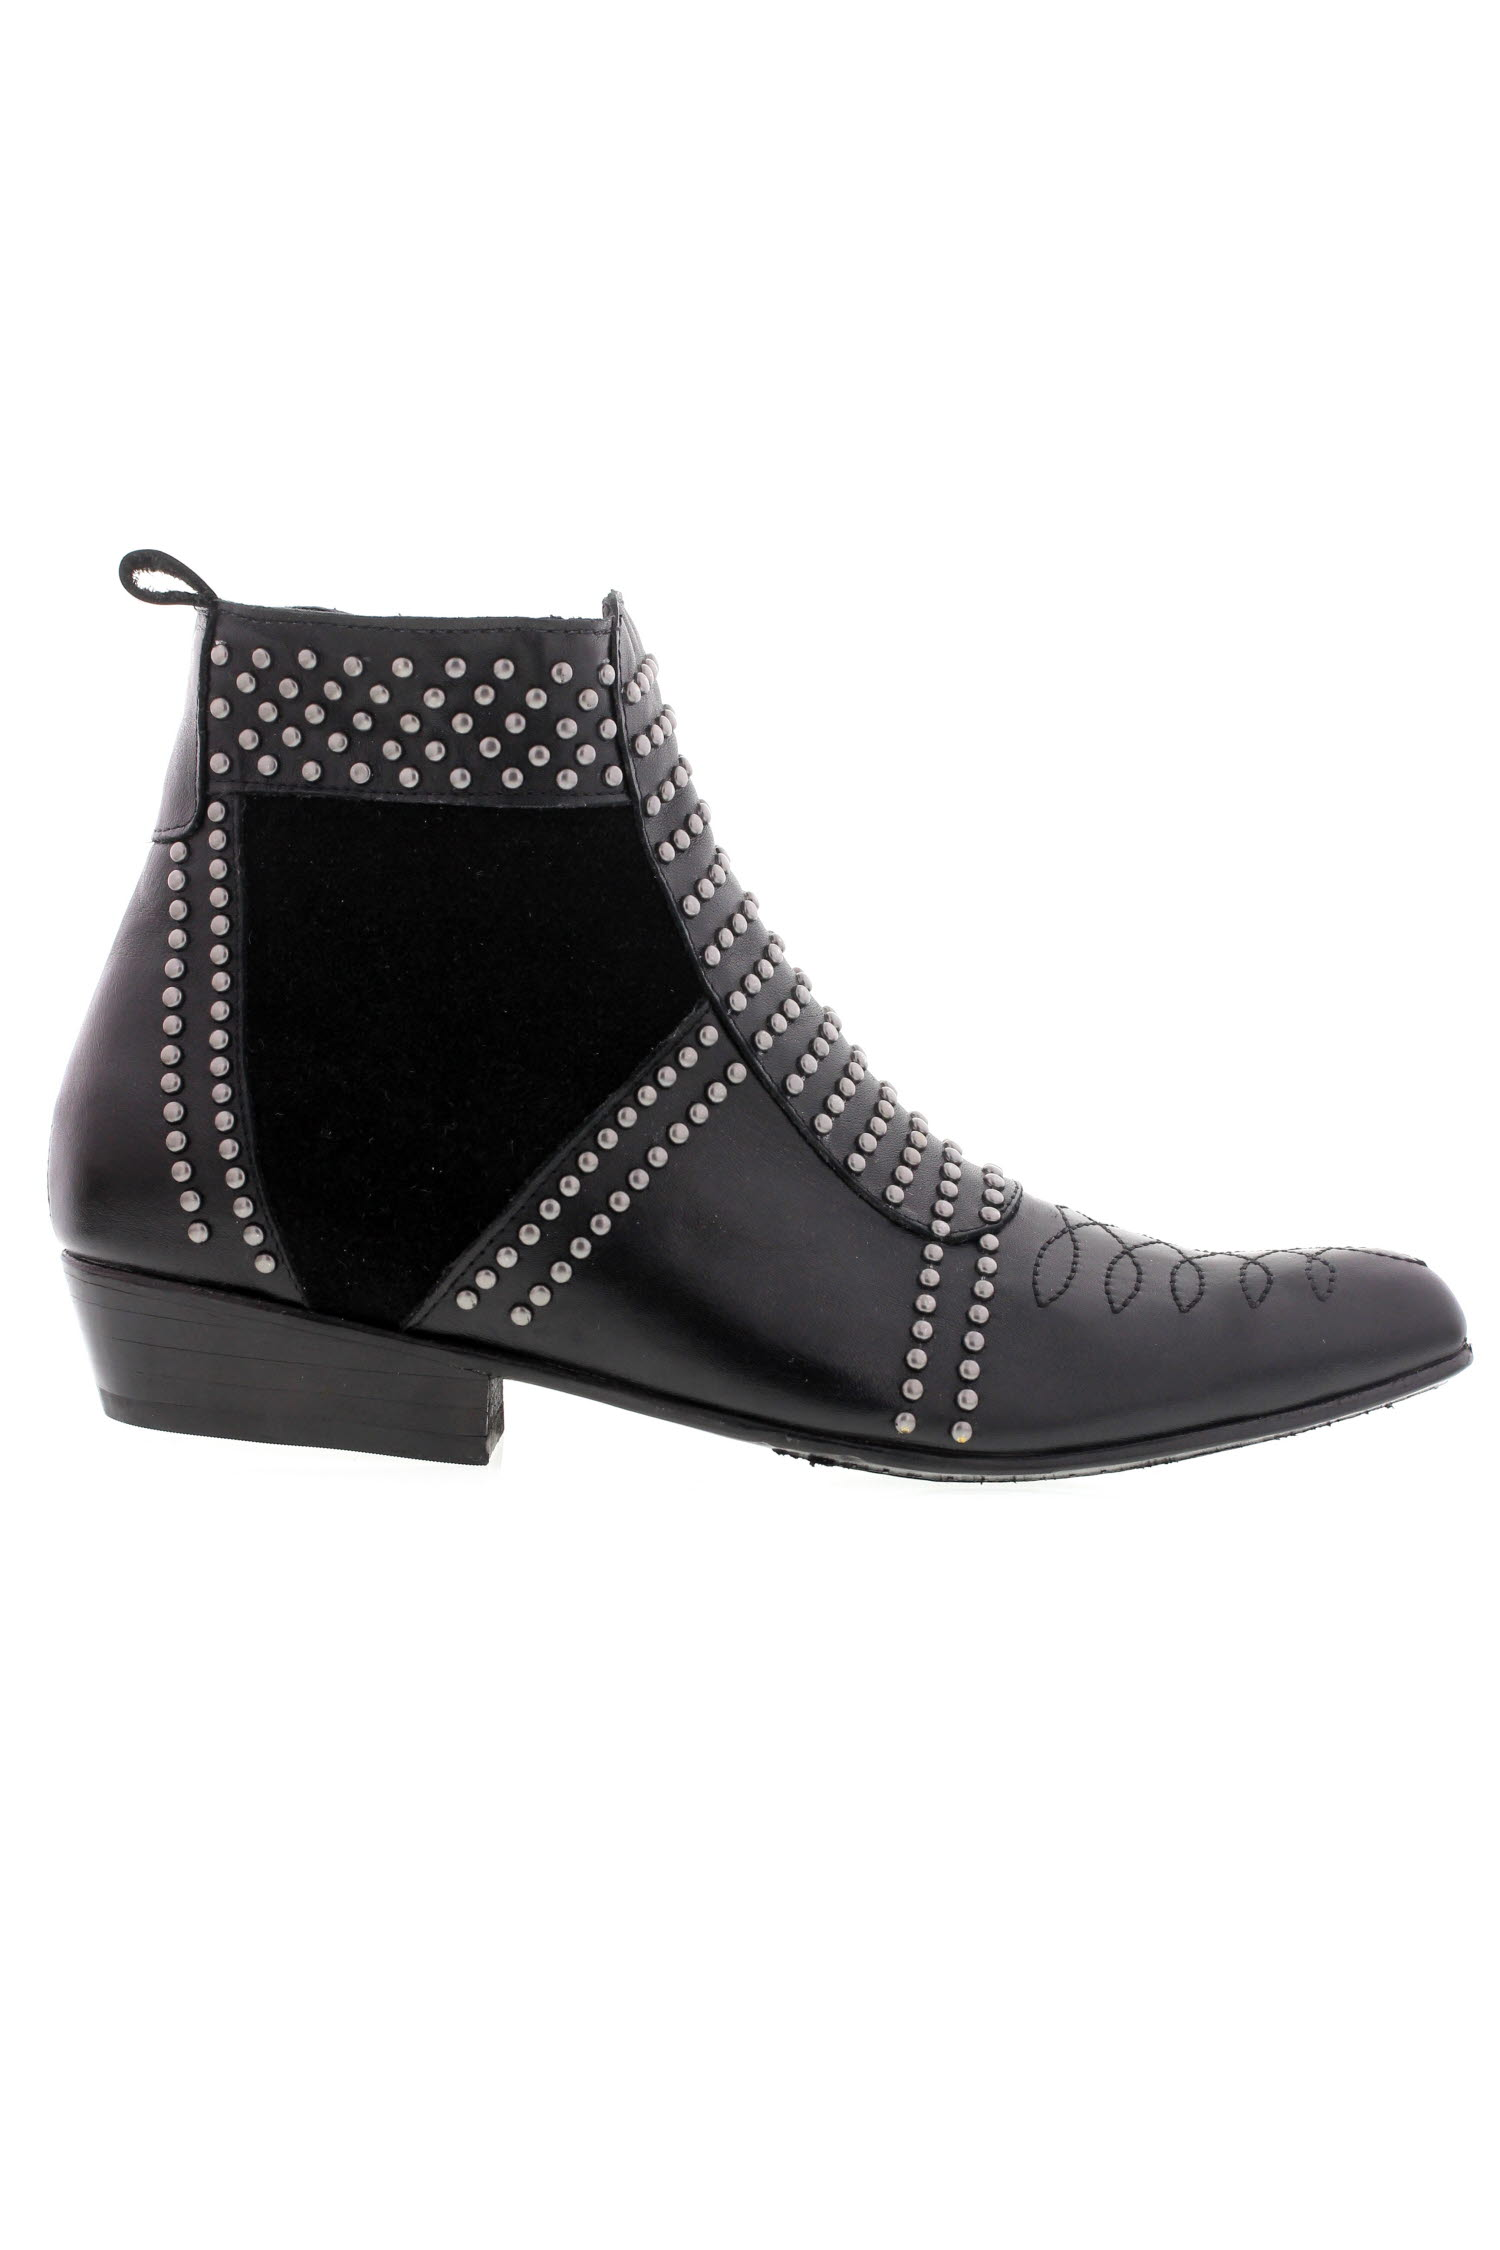 Charlie Boots Cloutees Noires Anine Bing